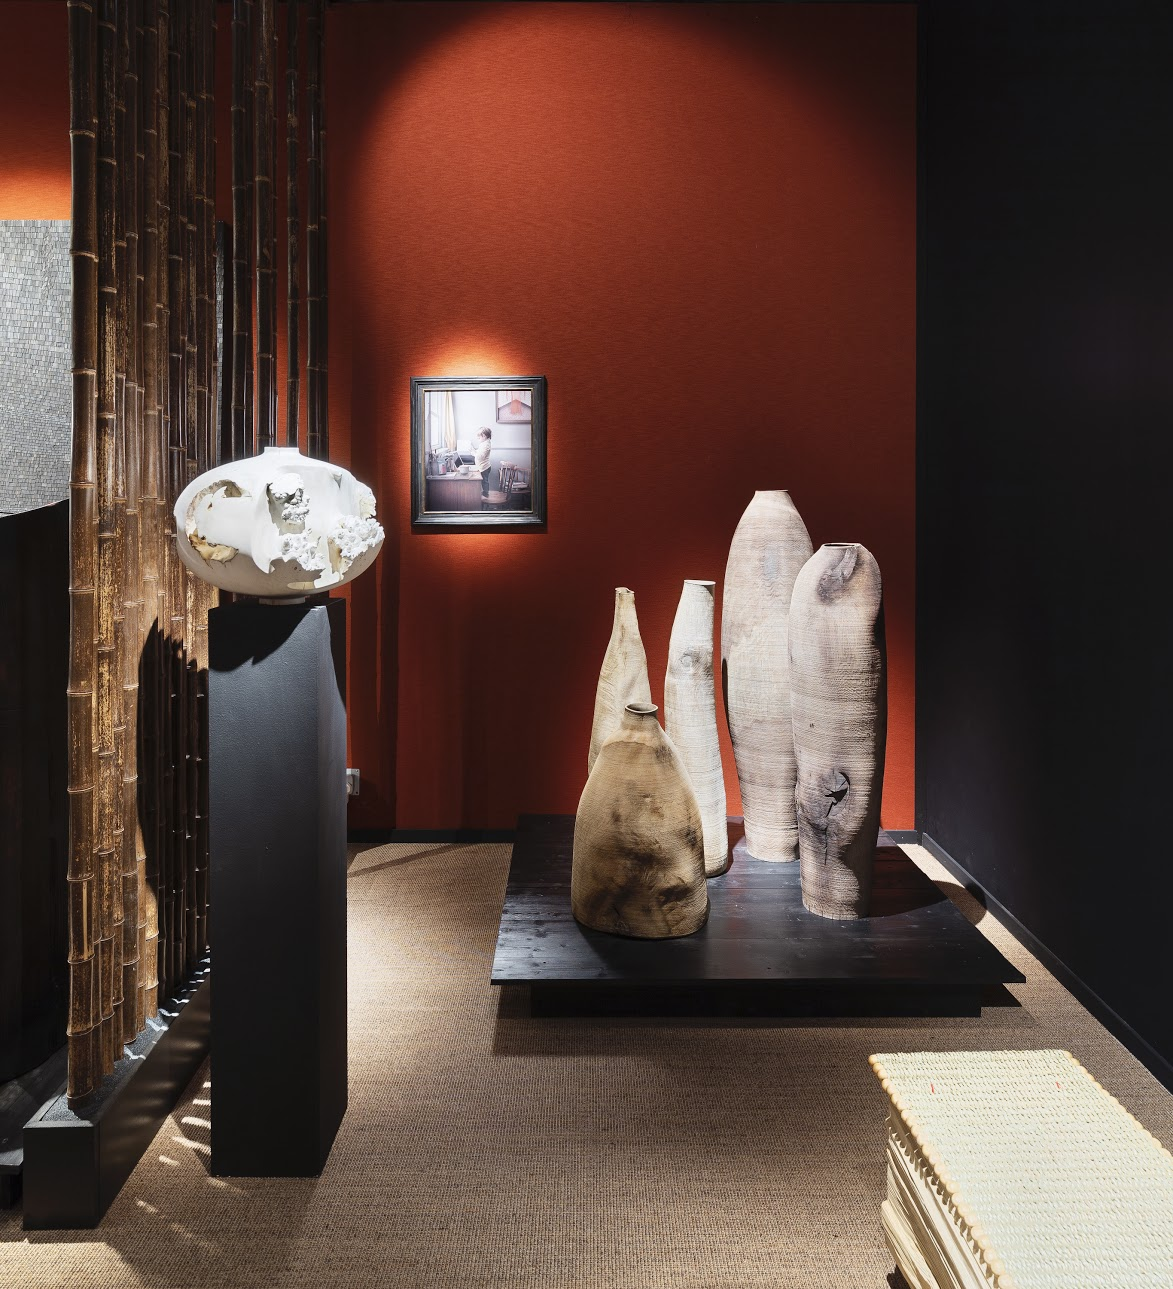 Sarah Myerscough Gallery at Masterpiece London 2019 ⓒ Ollie Hammick  On display Eleanor Lakelin's  Echoes of Amphora  (left), Ernst Gamperl's vessels (right) and Maisie Broadhead's  Malou Study  (background)